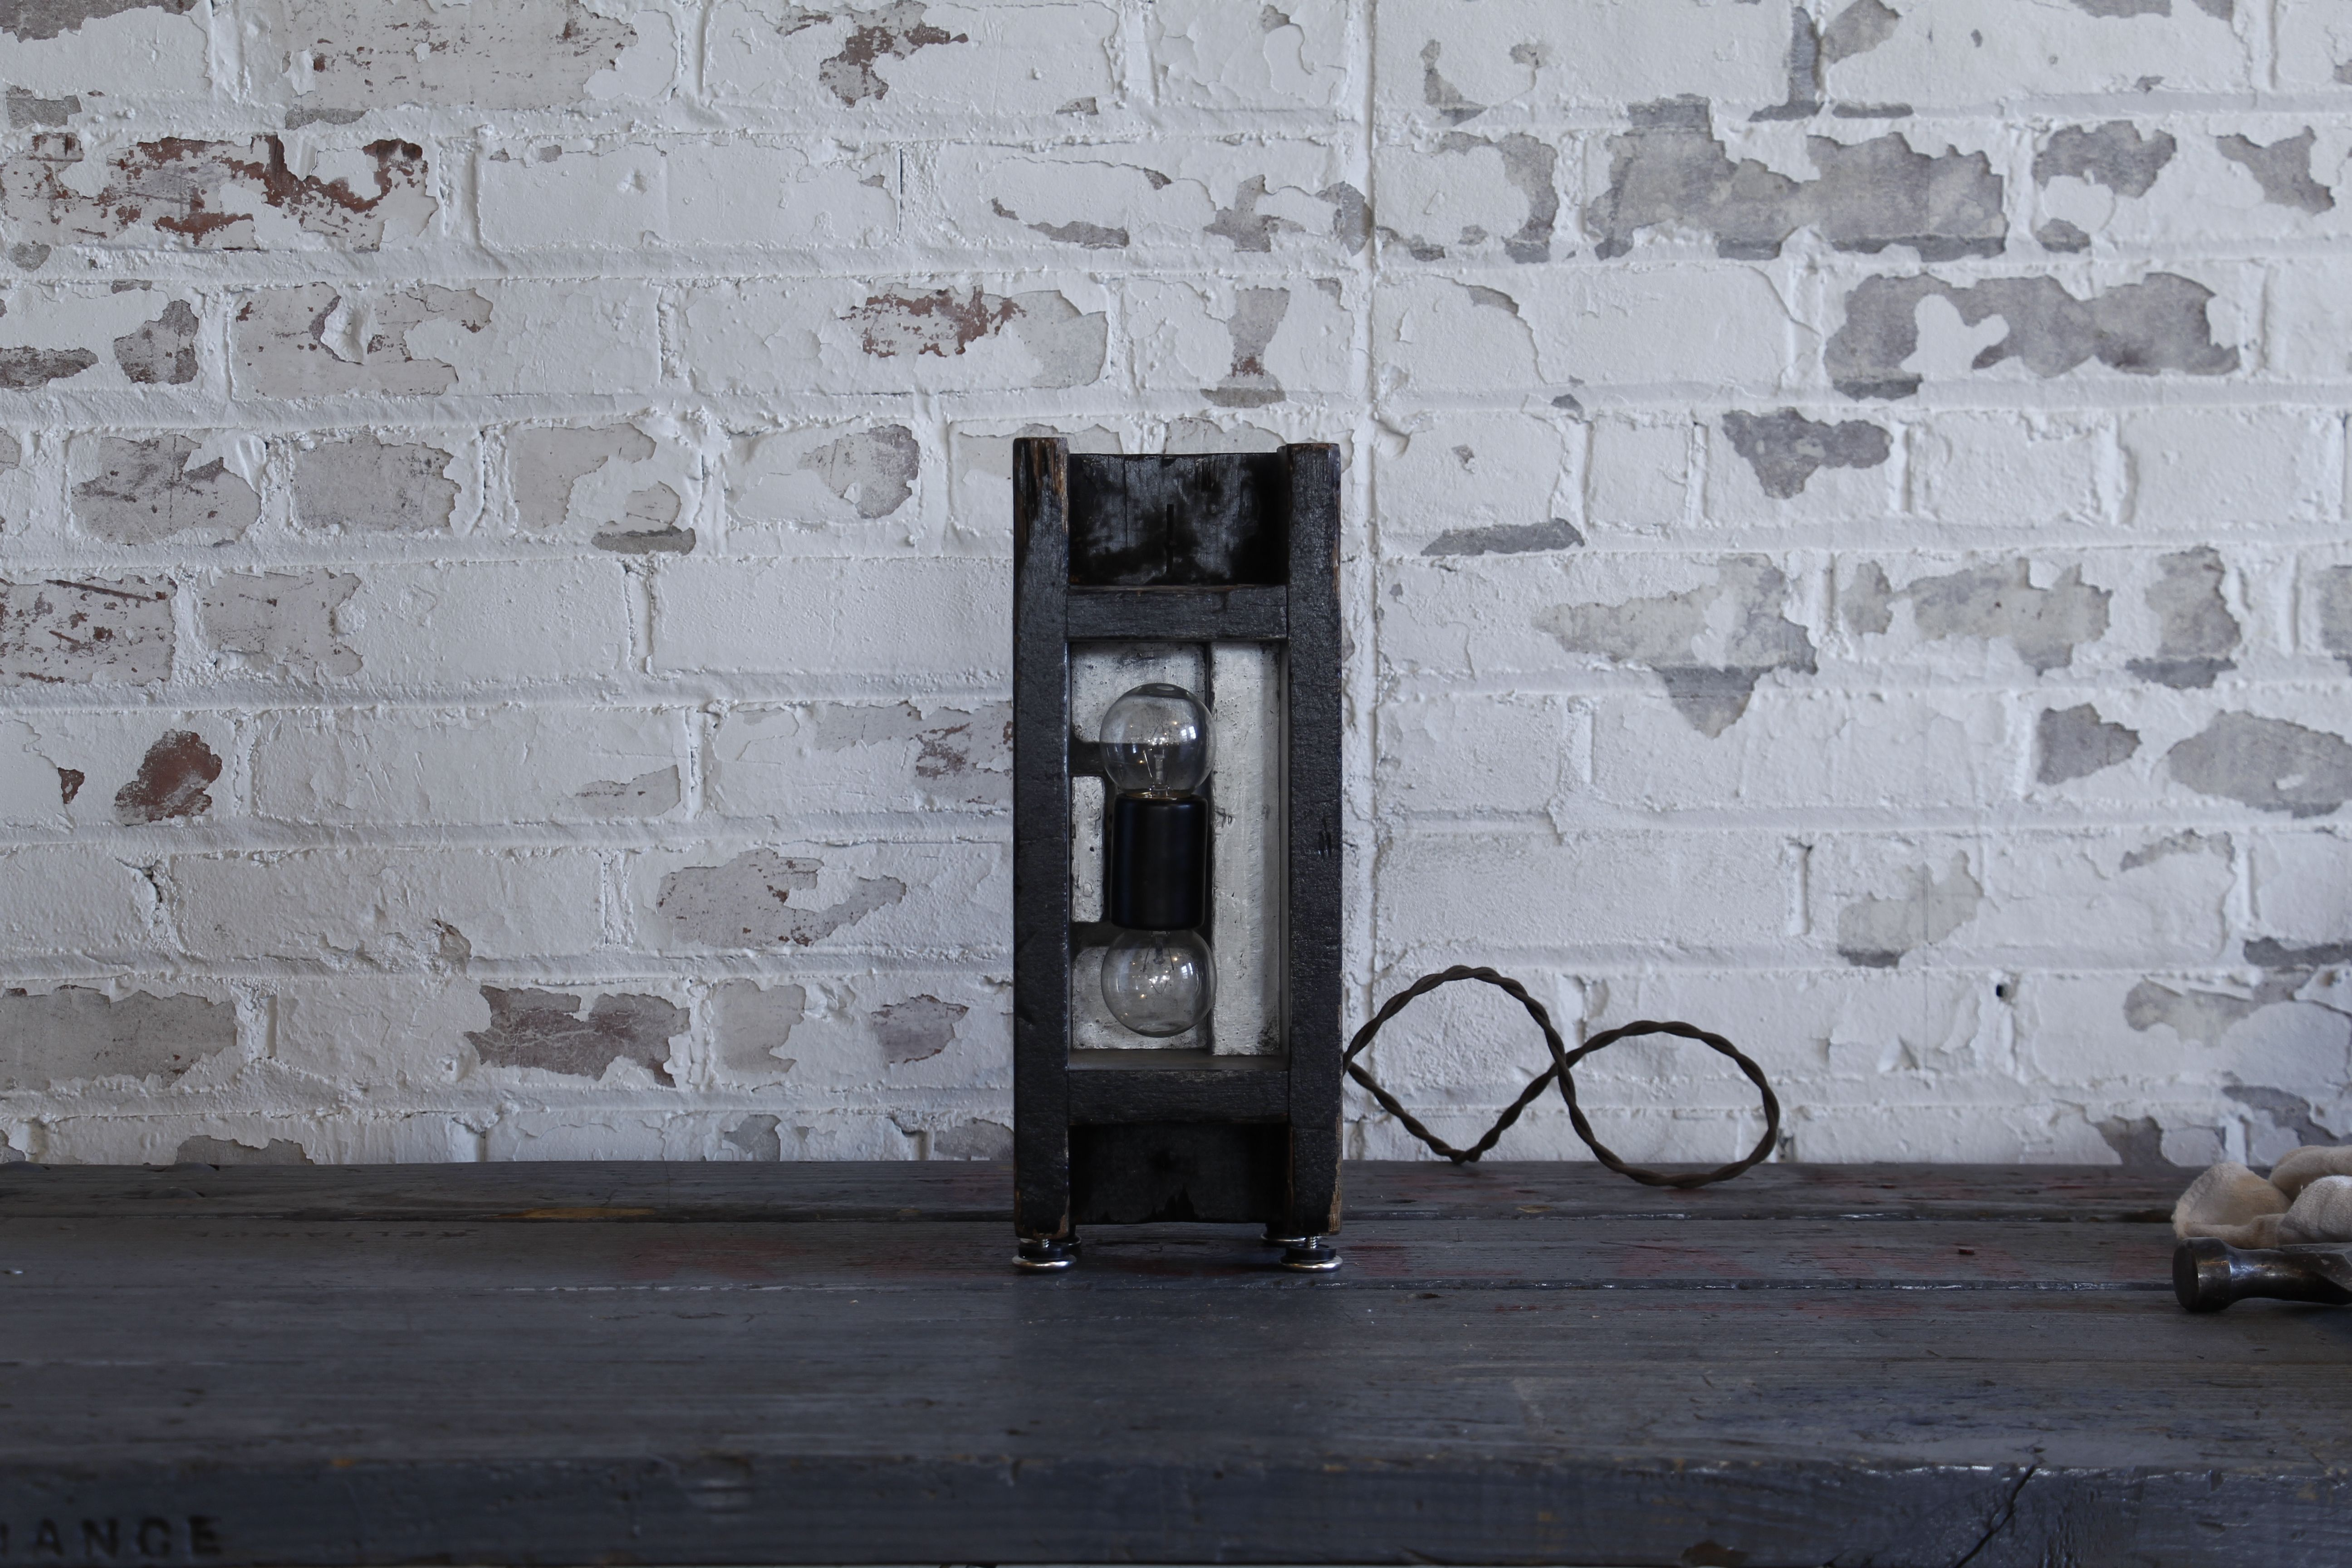 36 Of 80 Limited Edition Foundry Lights By Rustbelt Reclamation, A Reclaimed  Wood Furniture Manufacturer